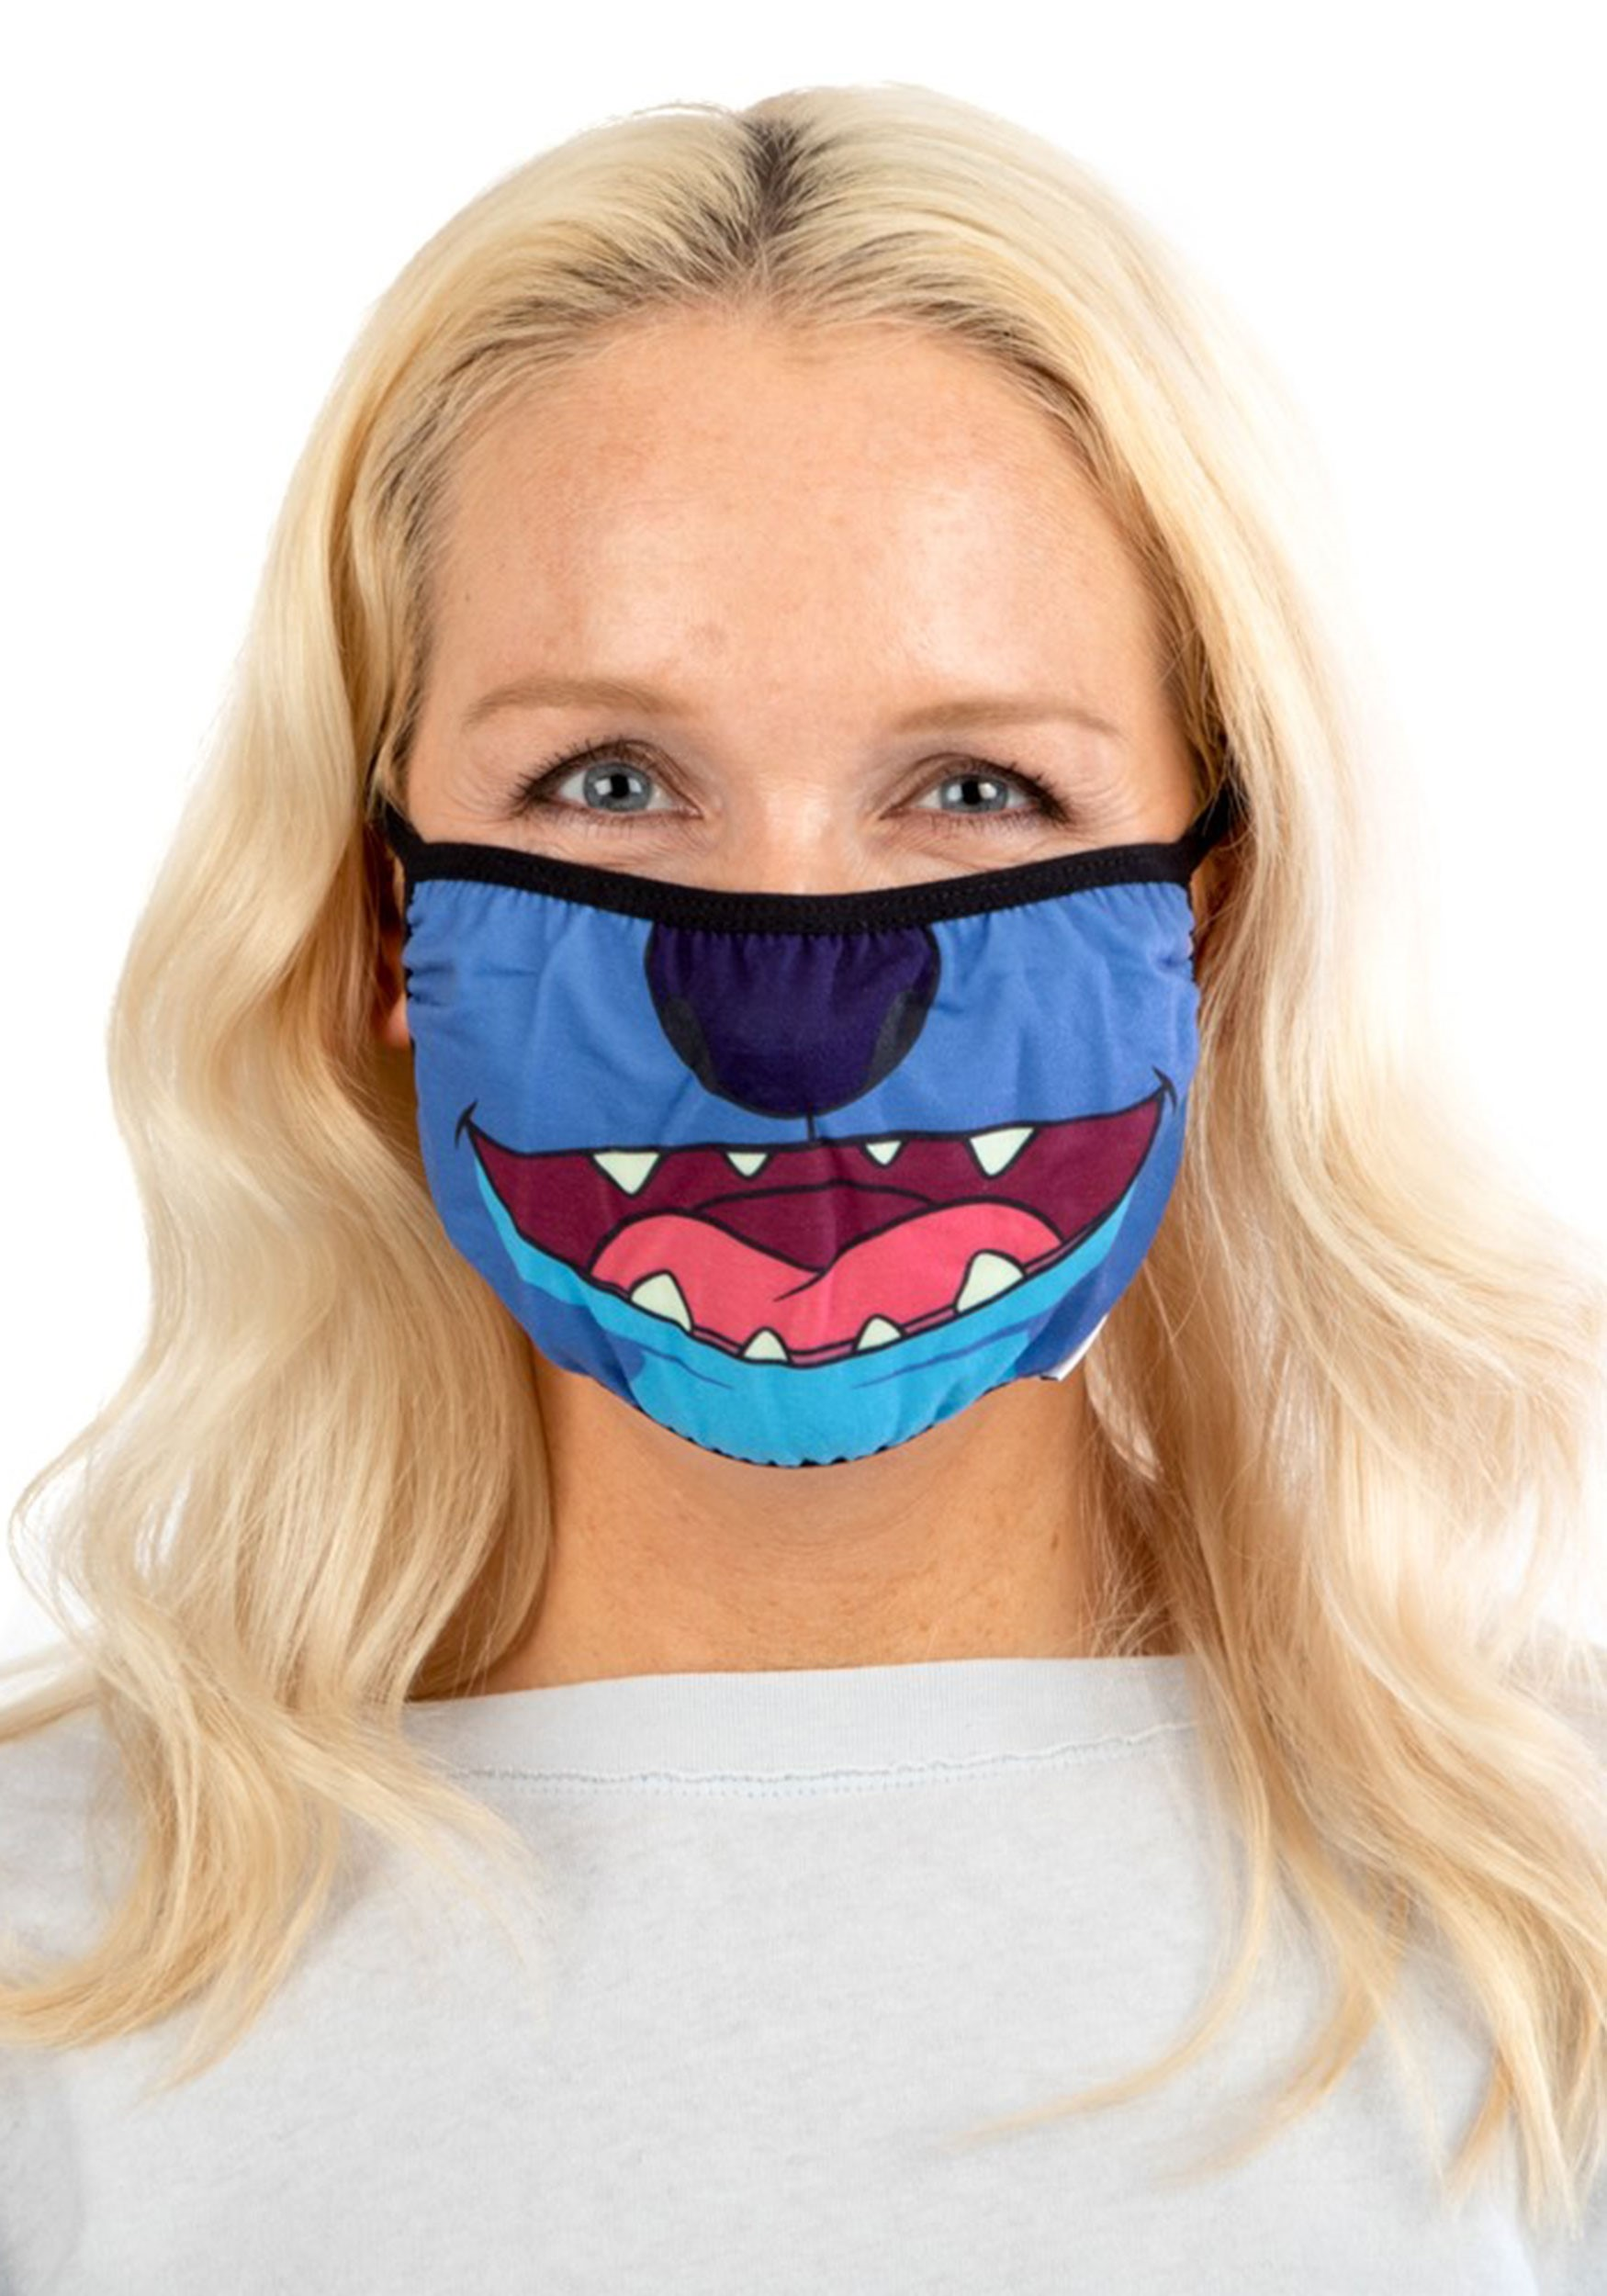 Adult Adjustable Stitch Face Cover